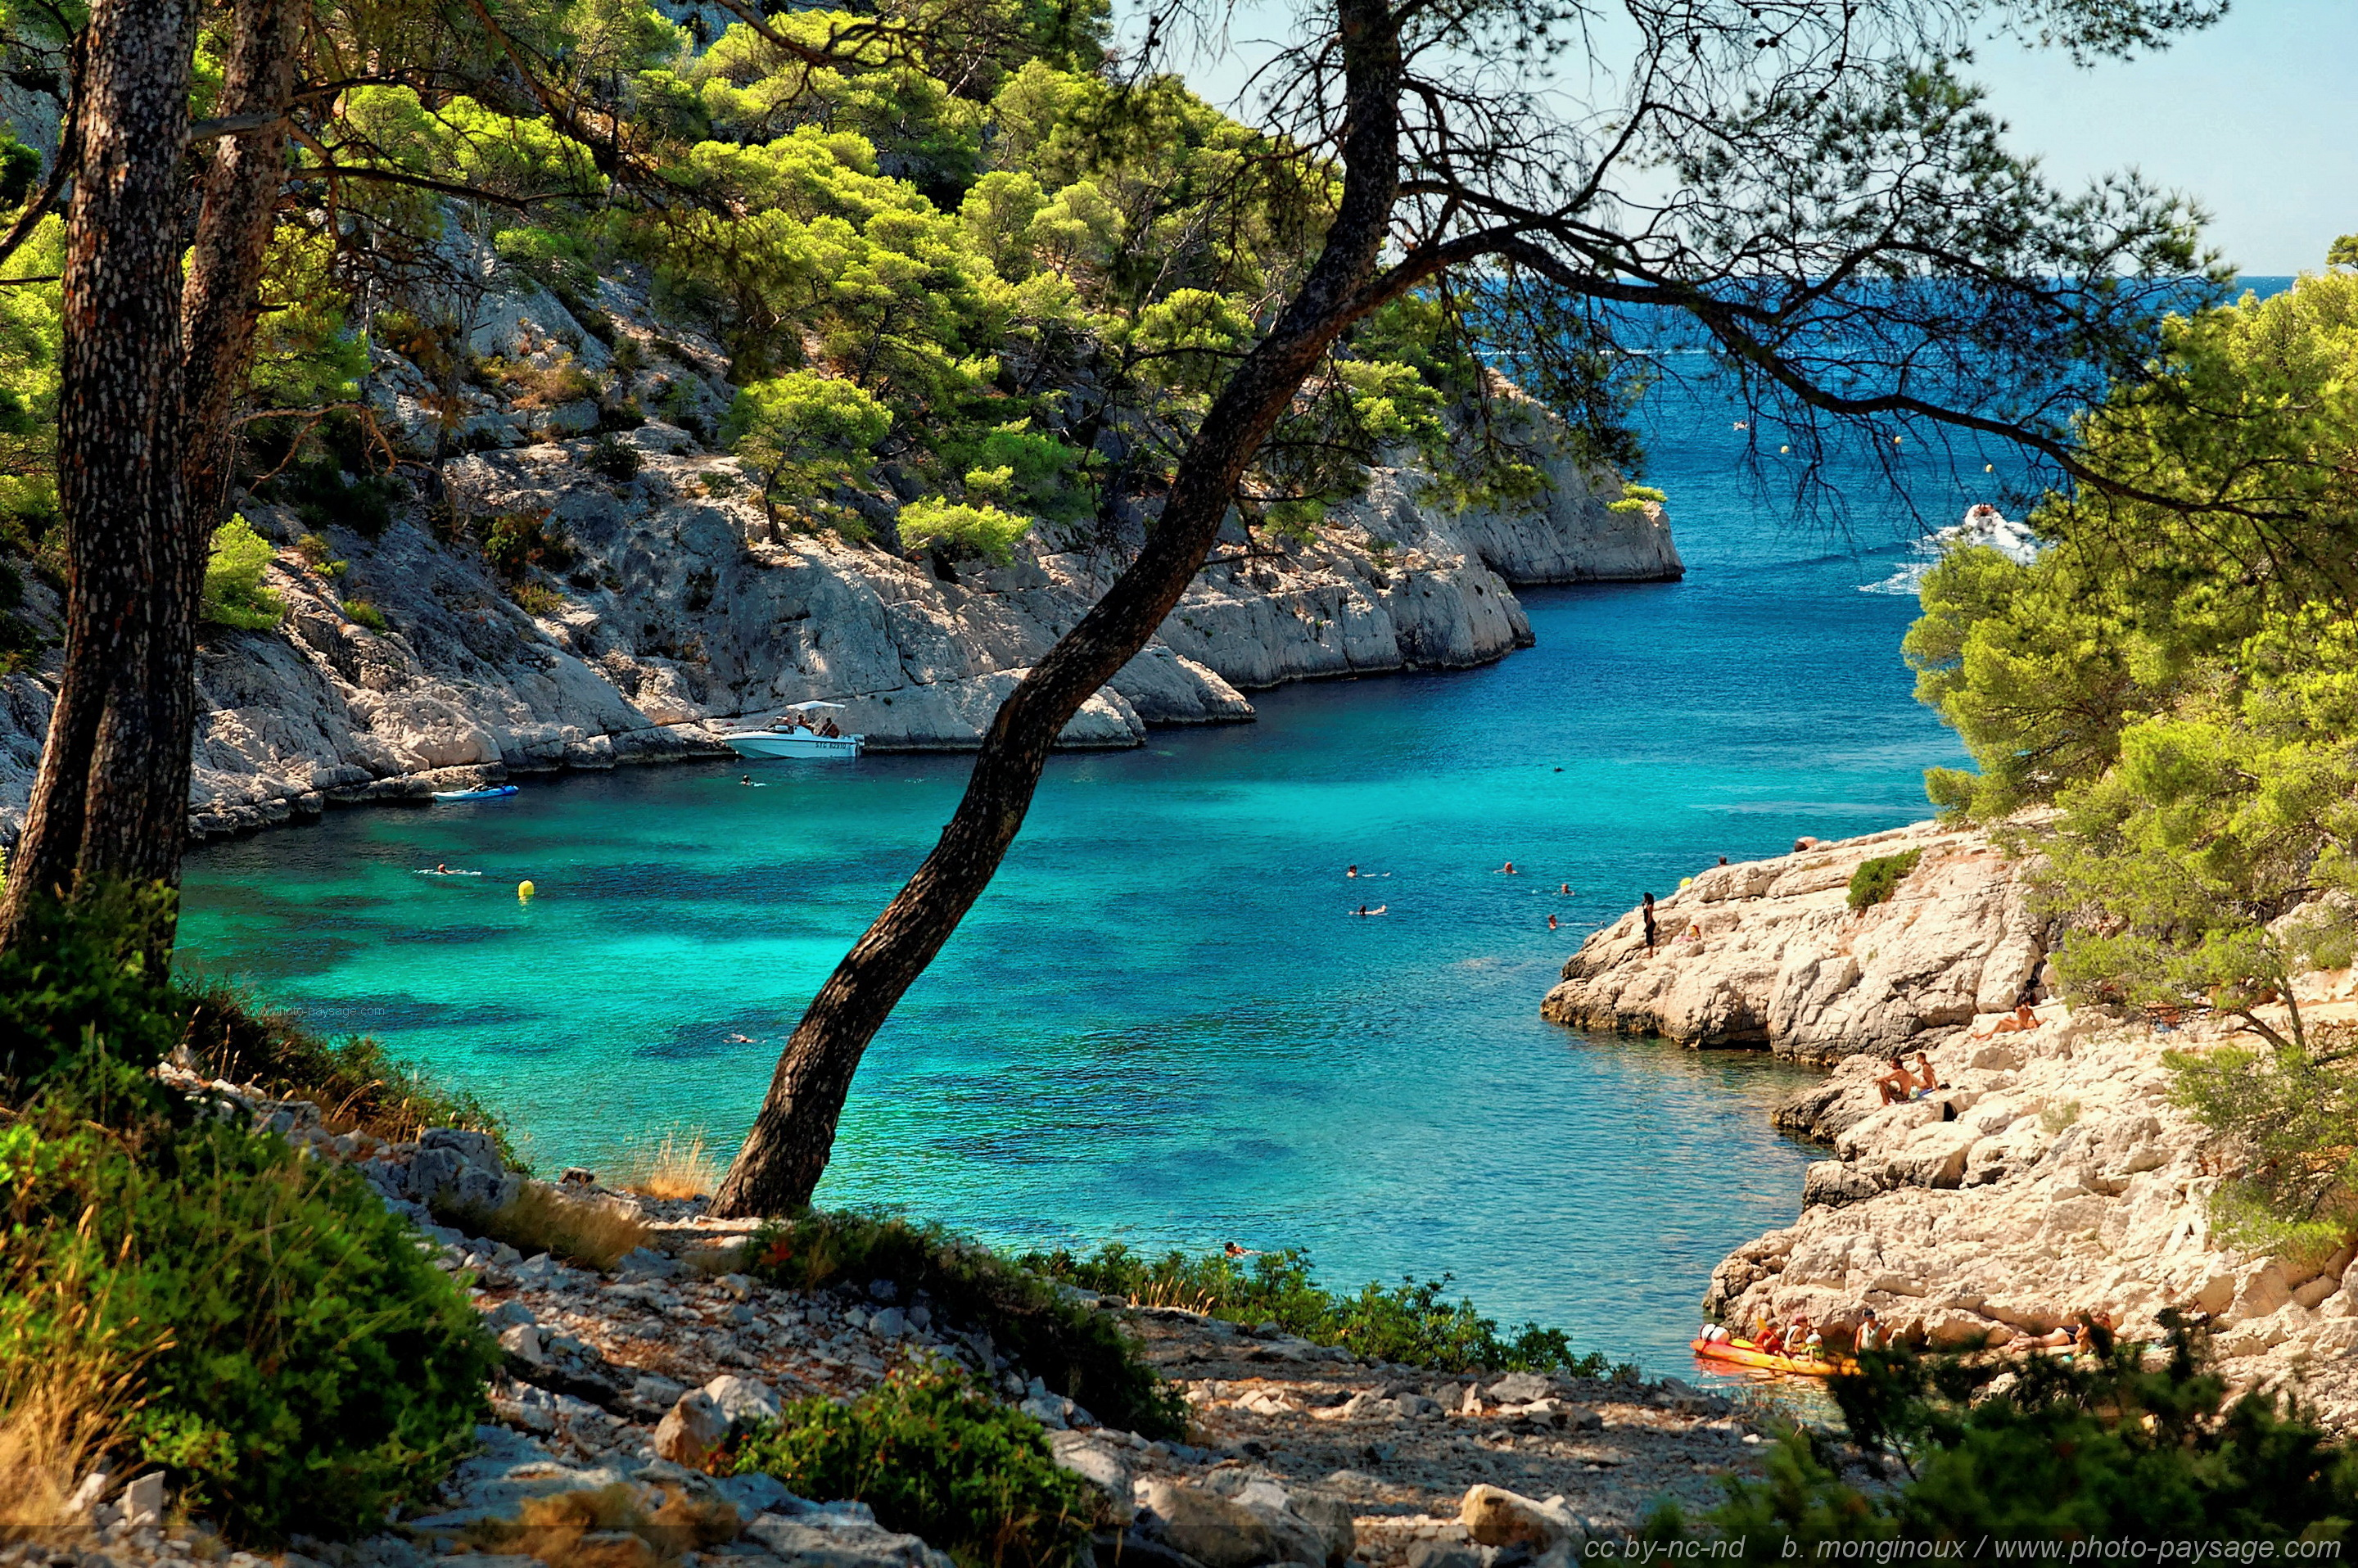 Parc national des calanques le blog de photo - Place de port disponible mediterranee ...